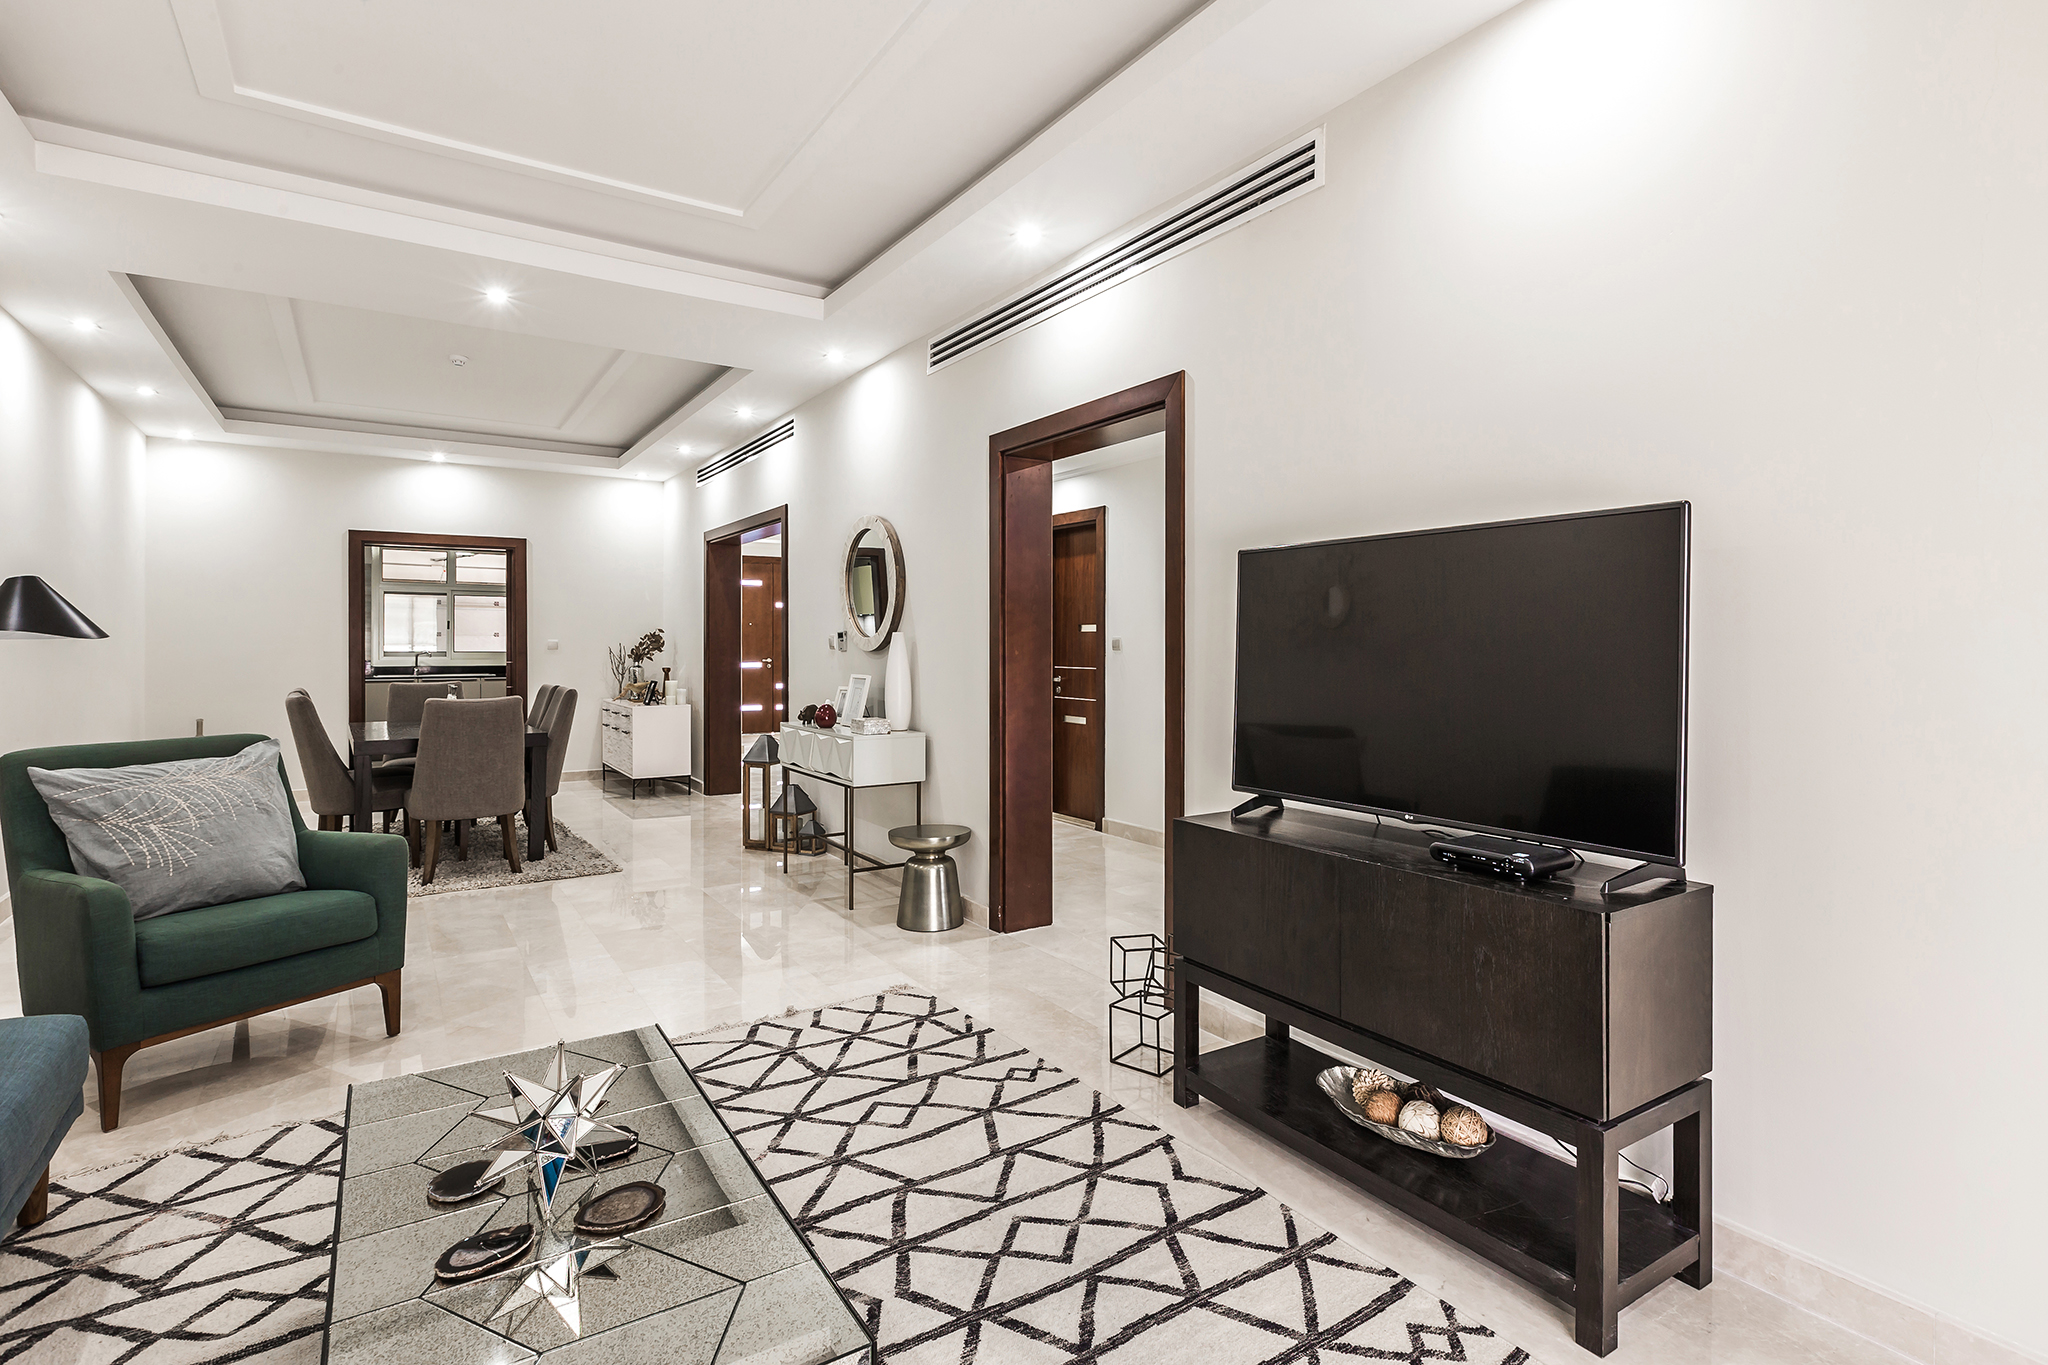 Indulge with family in this lofty living area